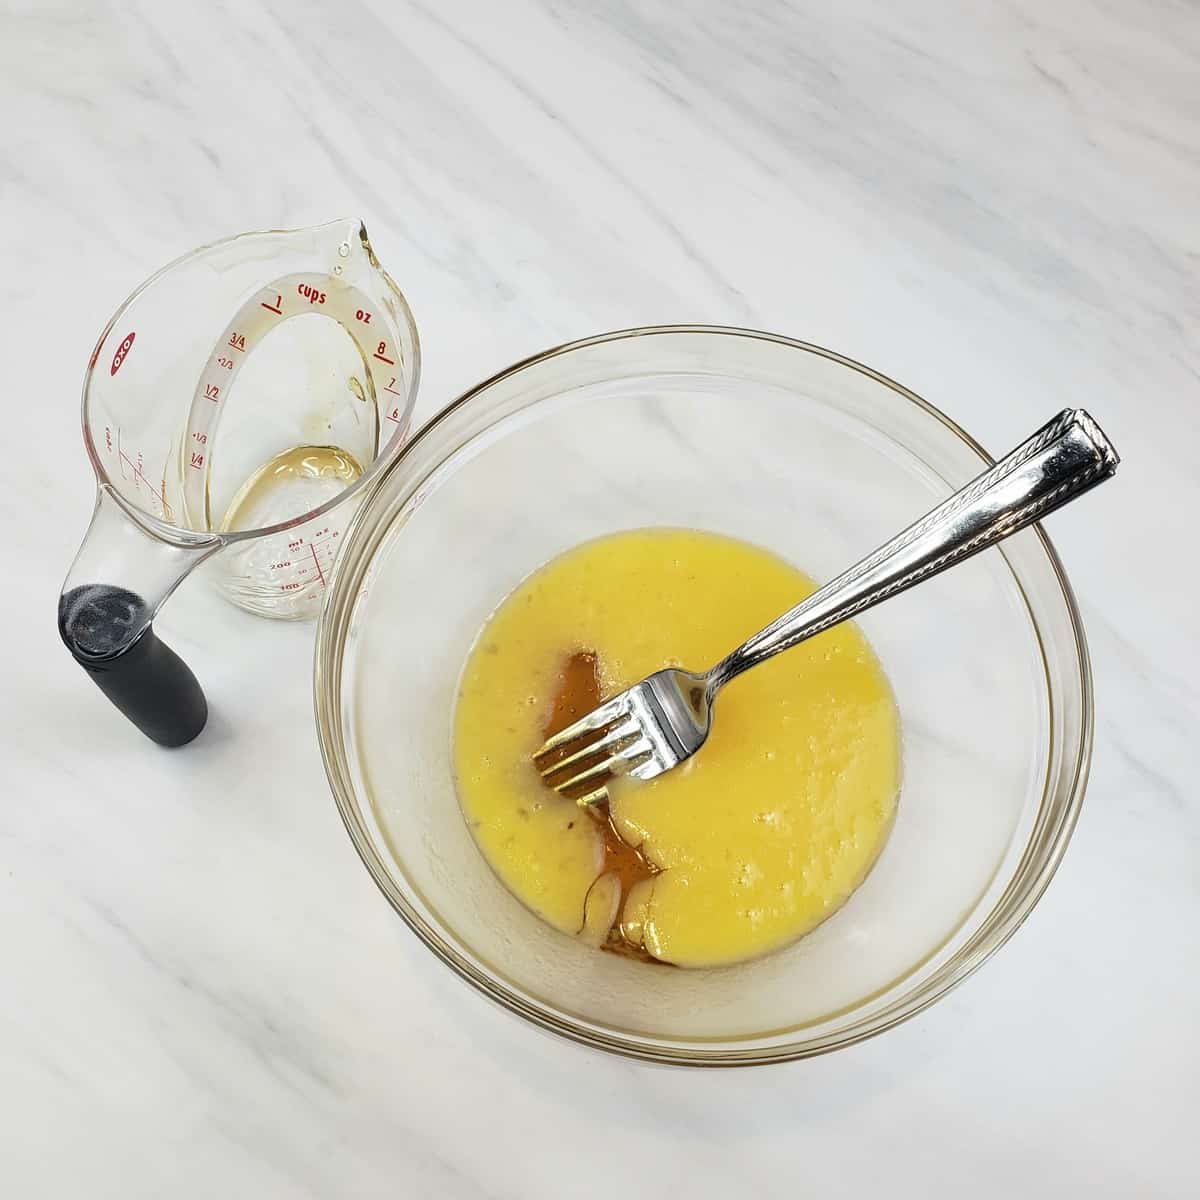 Melted butter and honey in a glass bowl with a fork